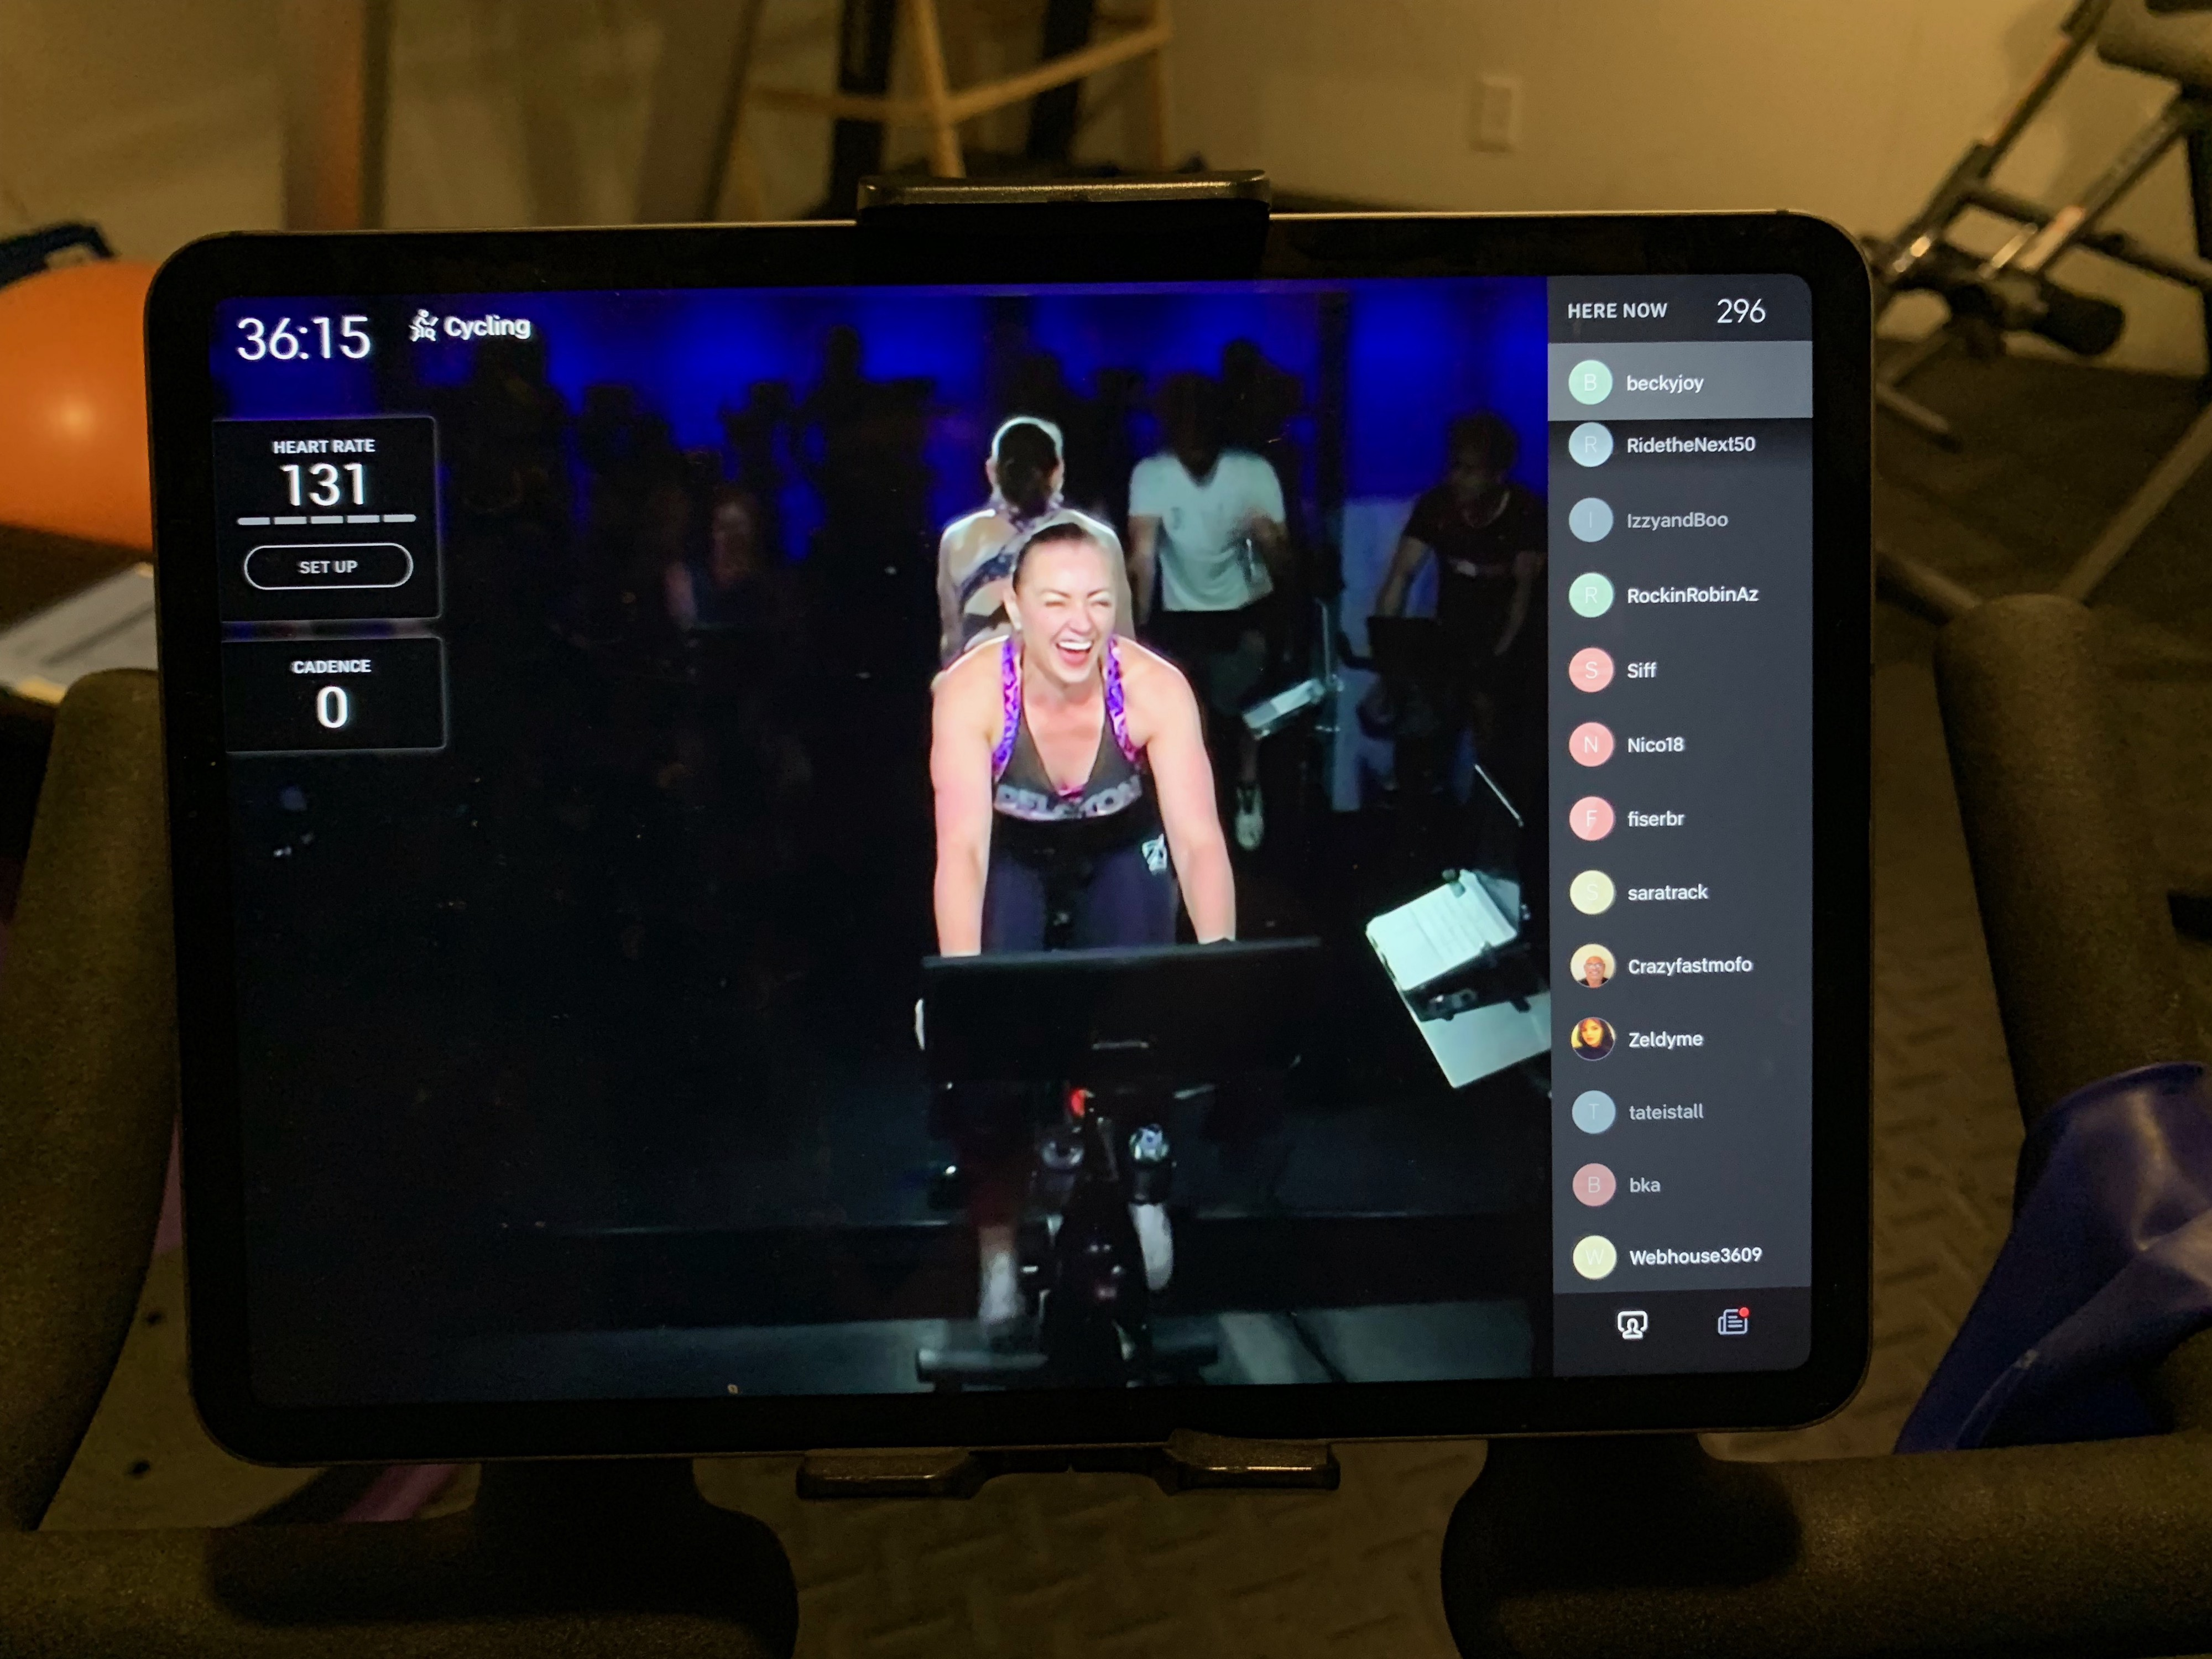 At-Home Indoor Cycling Apps Compared | by Becky Searls | Medium